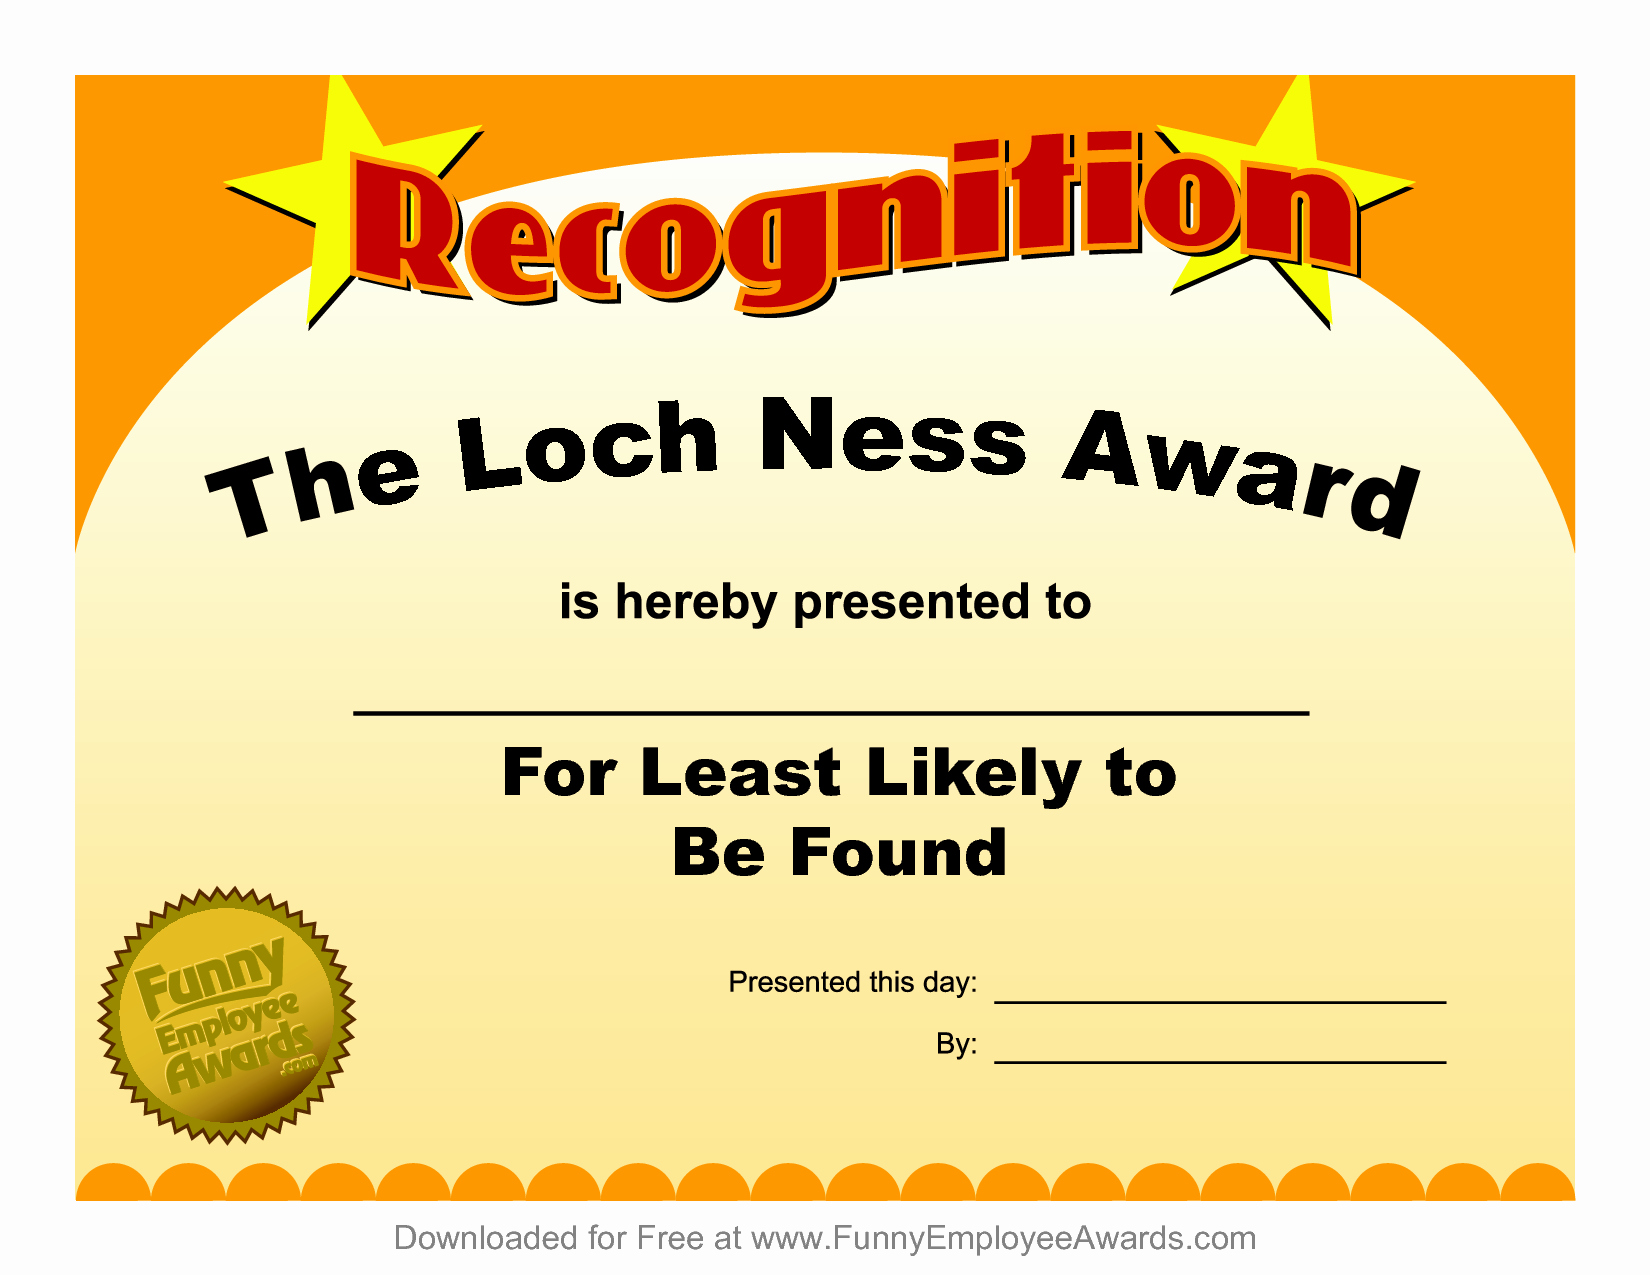 Free Downloadable Award Certificate Templates Elegant Funny Certificates for Employees 4 Funny Award